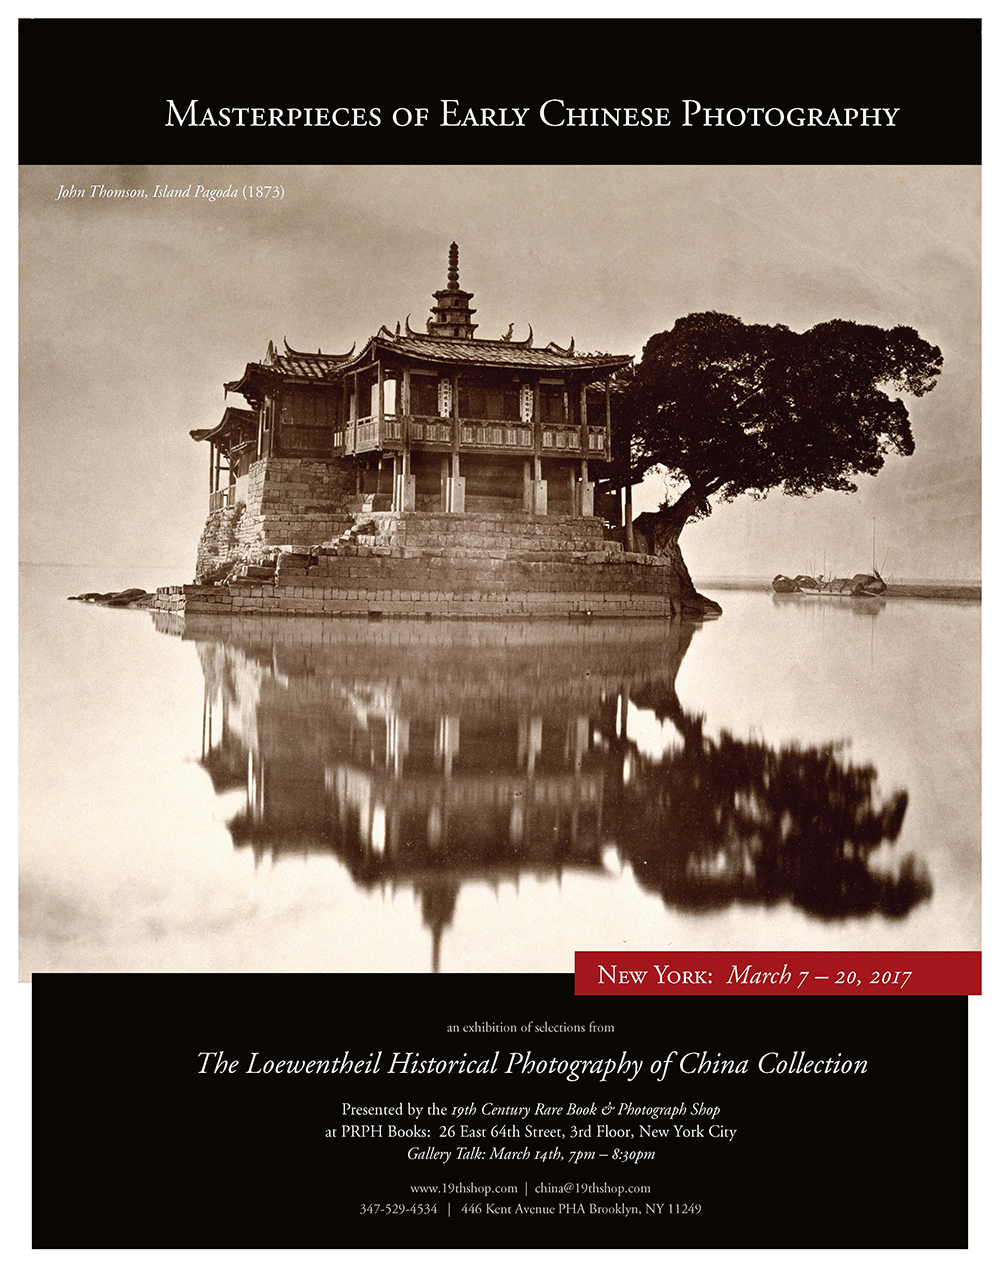 Masterpieces of Early Chinese Photography